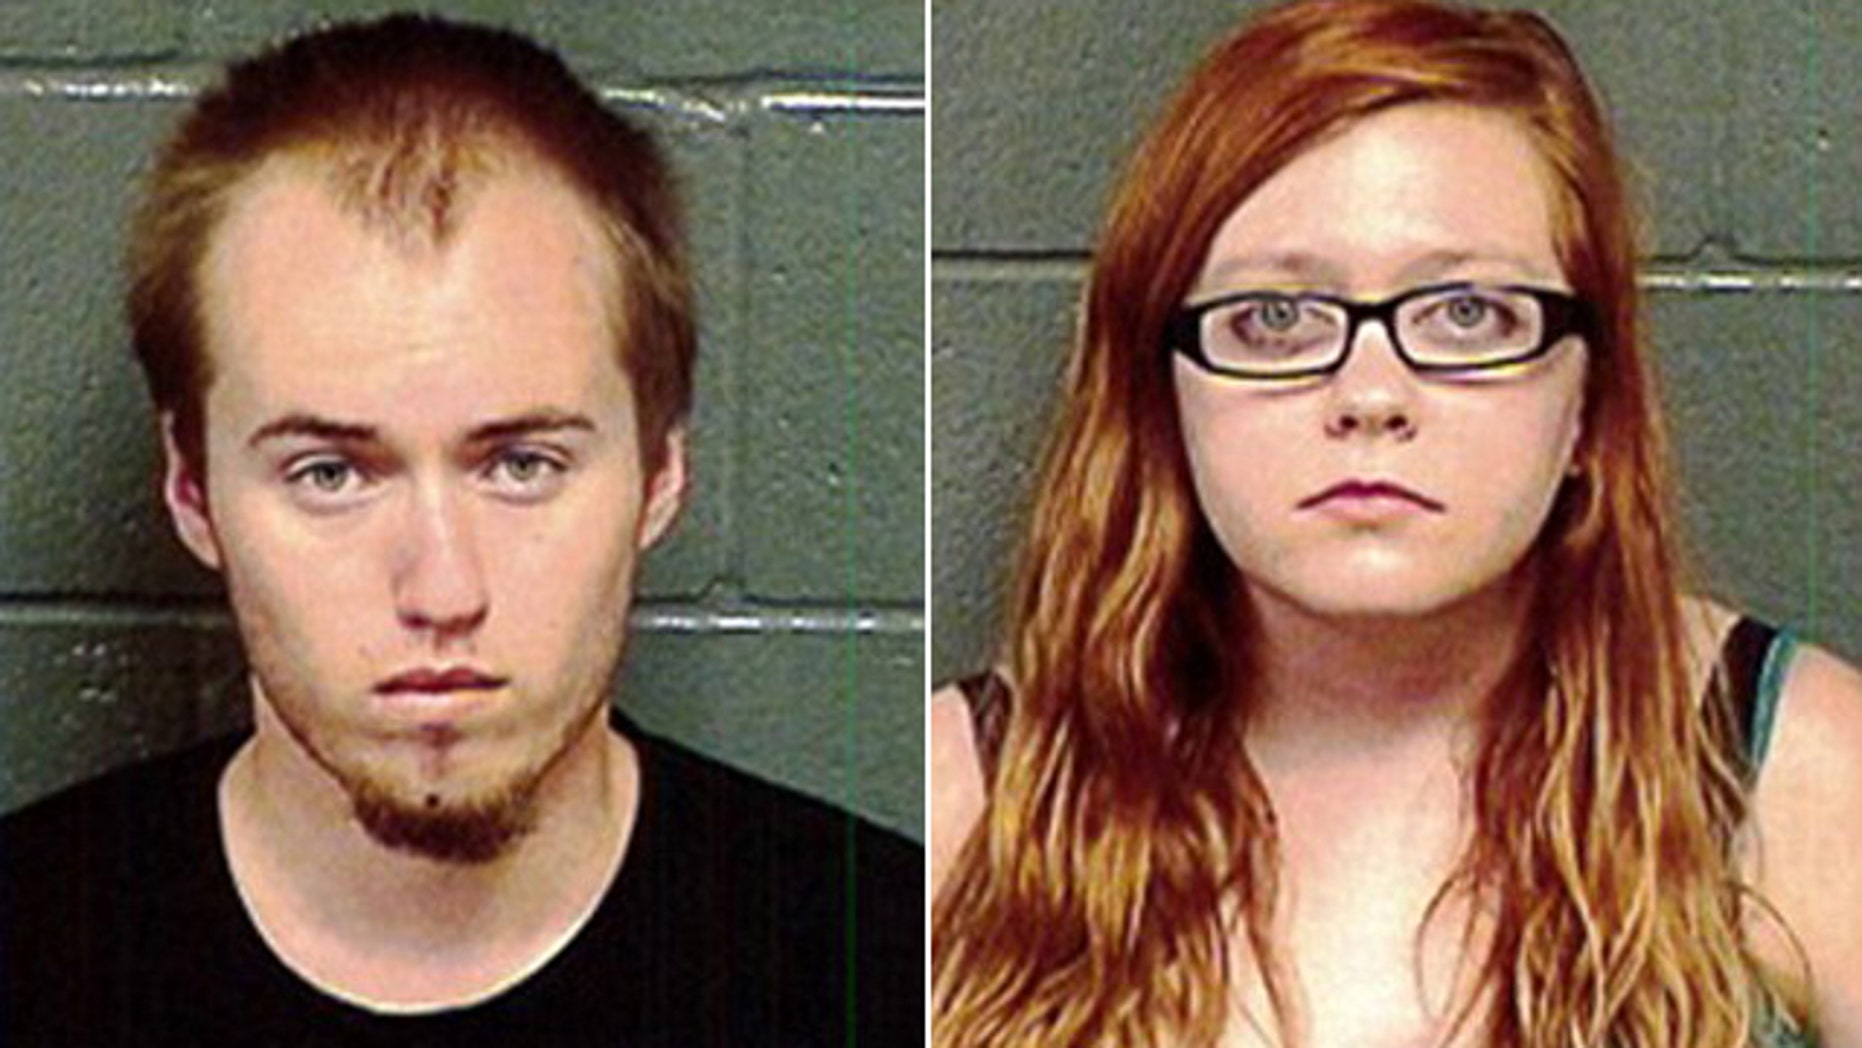 June 4, 2014: These photos show Brendan Lee Johnson, 19, and girlfriend Cassandra Ann Rieb. Both face possible first-degree murder charges in connection with deaths of Johnson's grandparents. (Reuters)